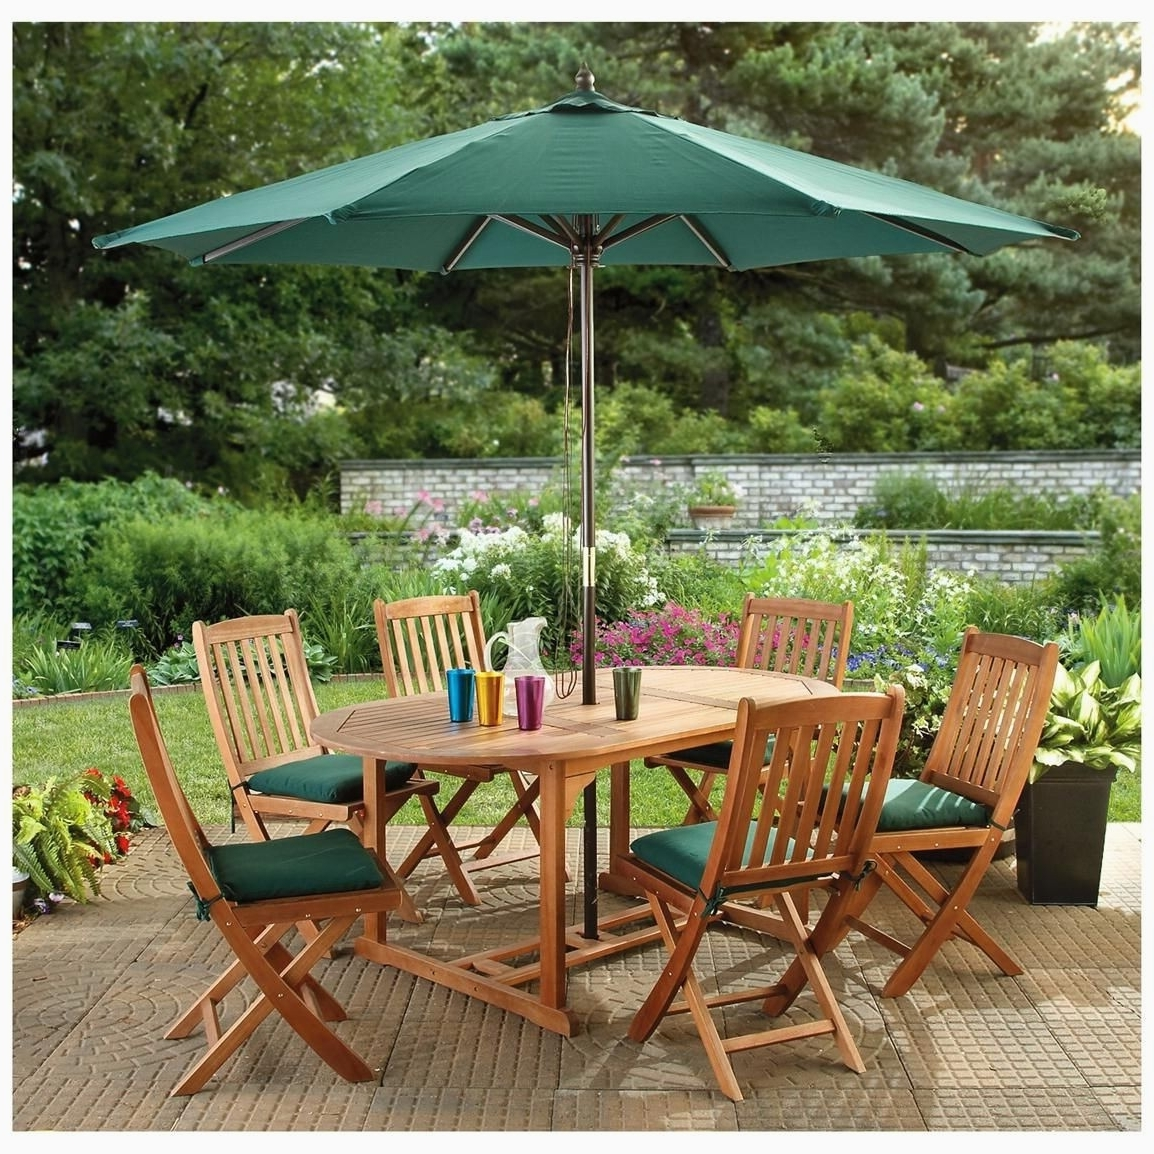 Outdoor Dining Table With Umbrella Hole Awesome Fantastic Patio For Popular Patio Tables With Umbrella Hole (View 7 of 20)